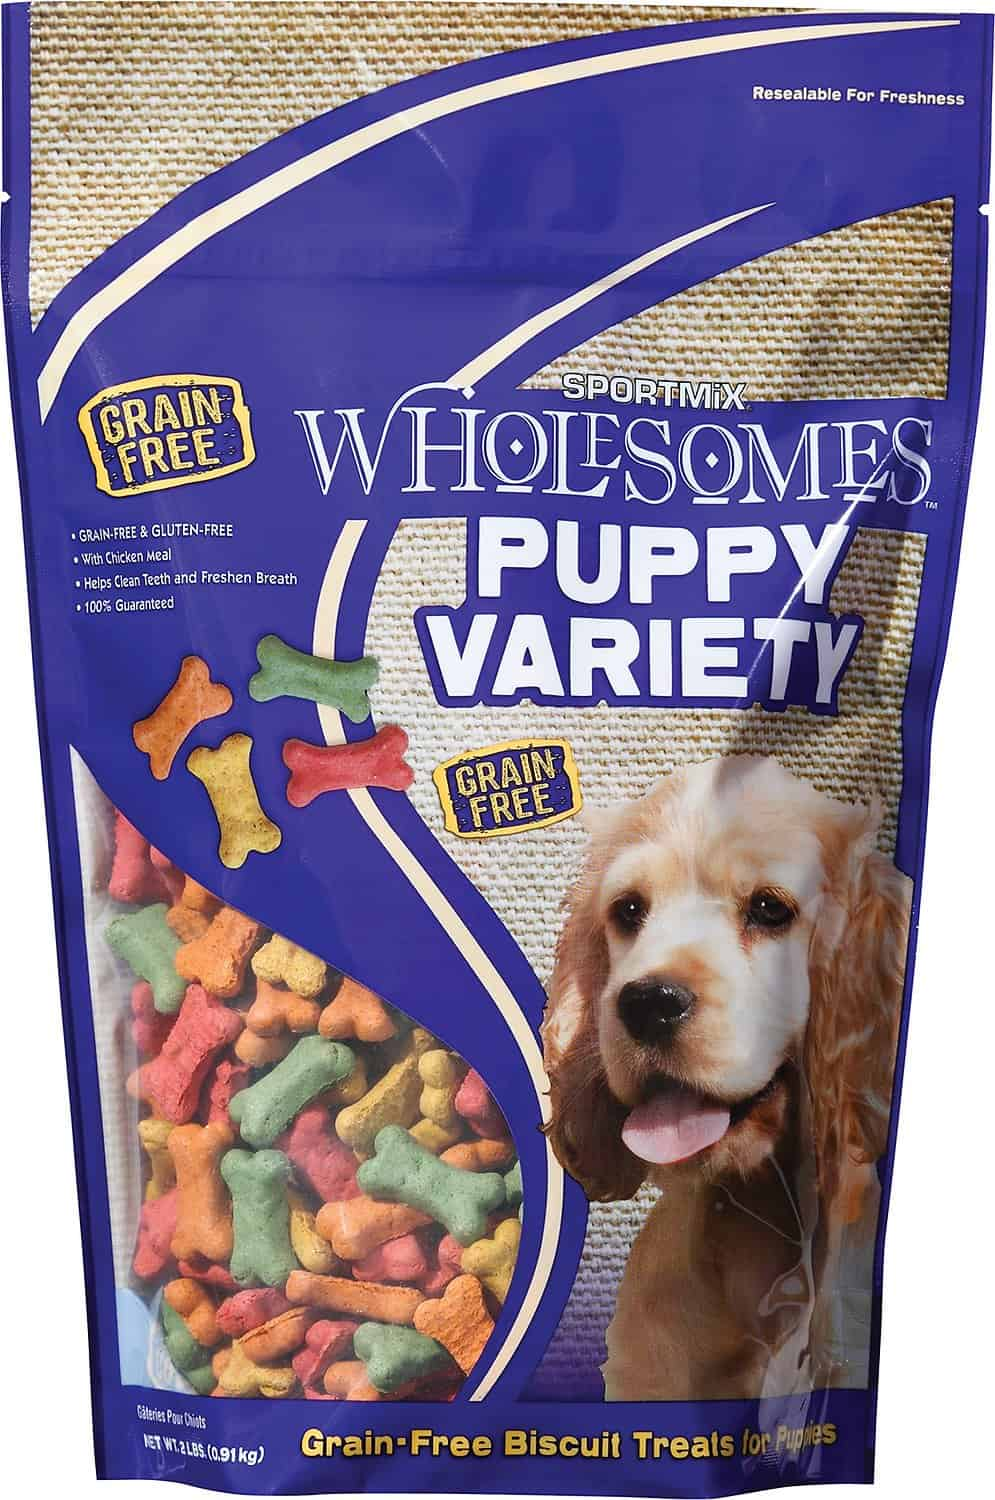 Sportmix Dog Food Review 2021: Is It Worth It? 21